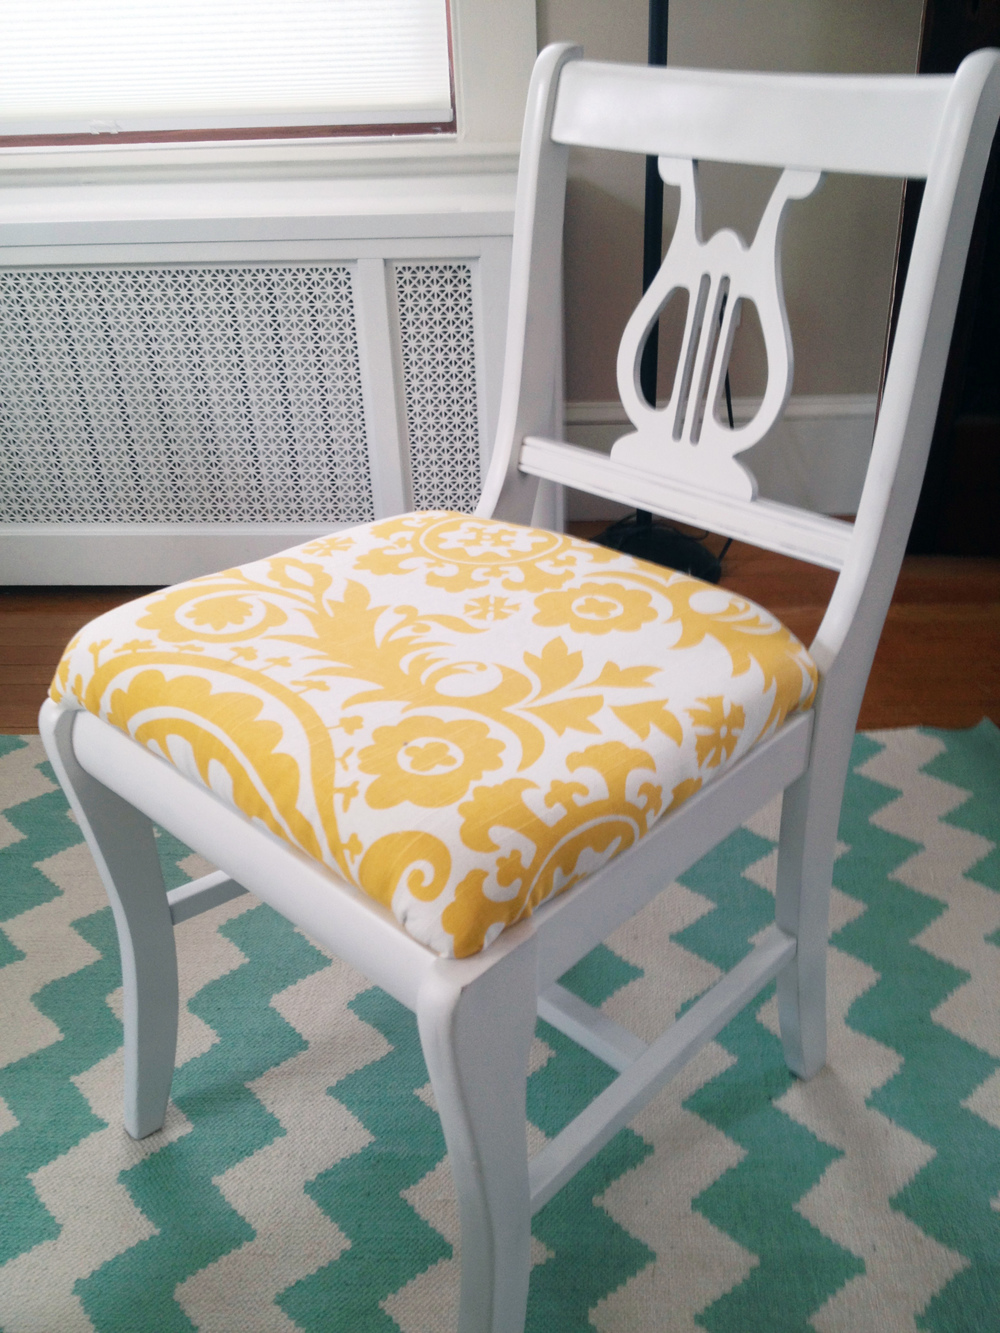 Finished chair in place